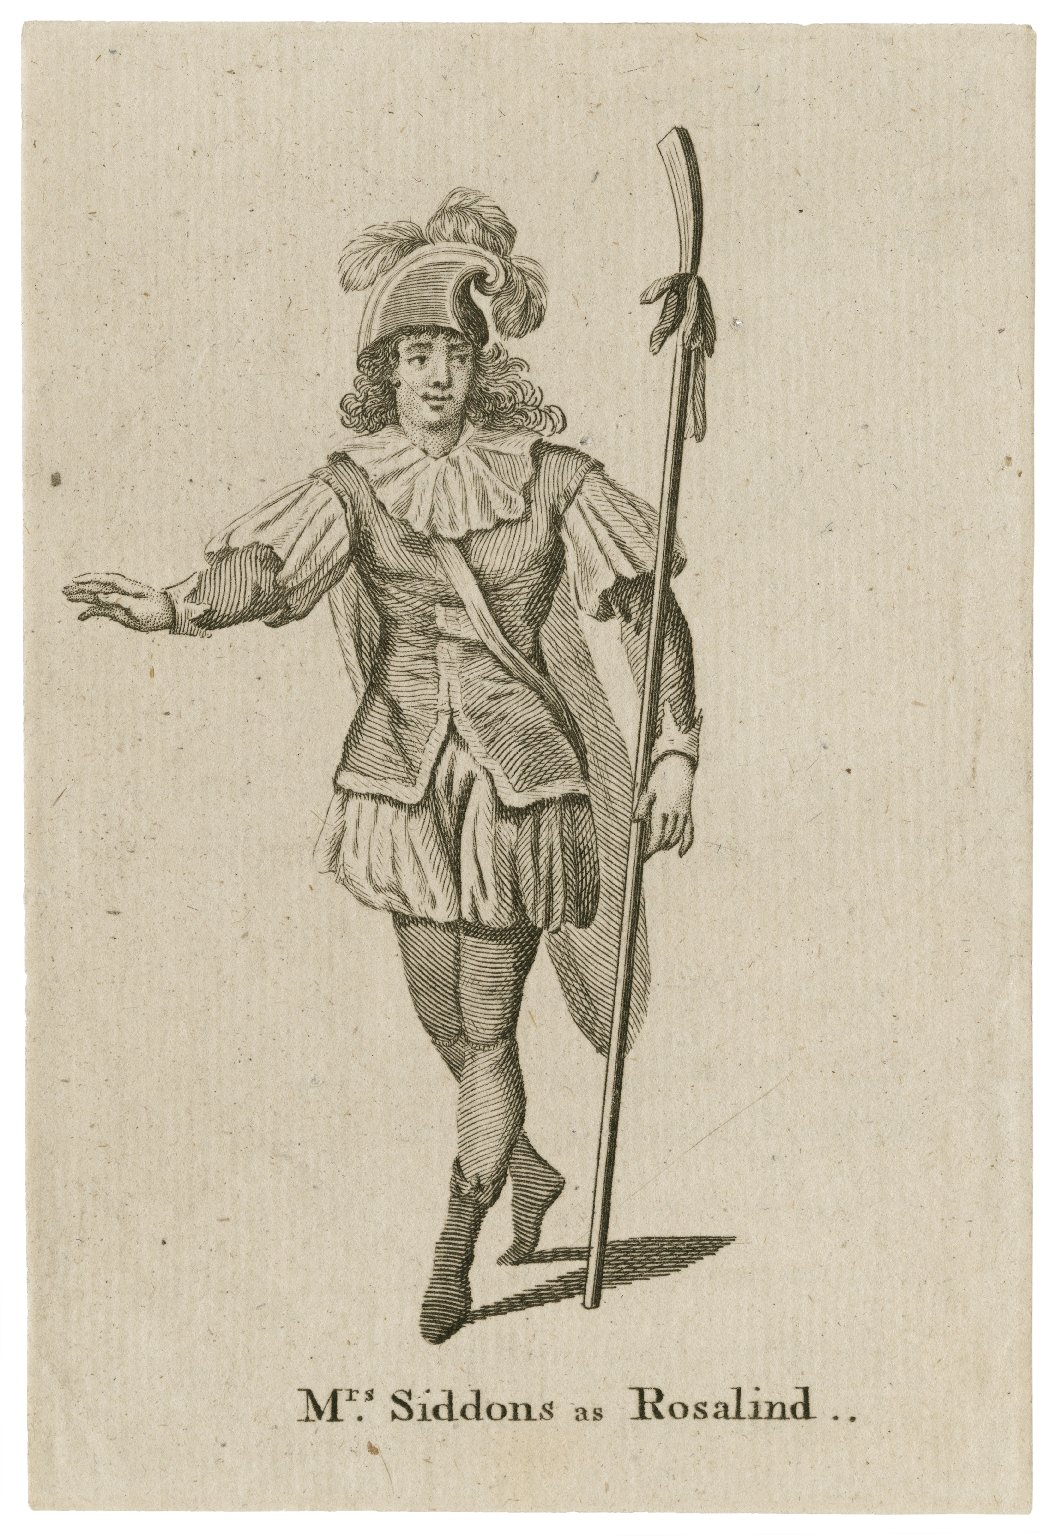 Mrs. Siddons as Rosalind [in Shakespeare's As you like it] [graphic].